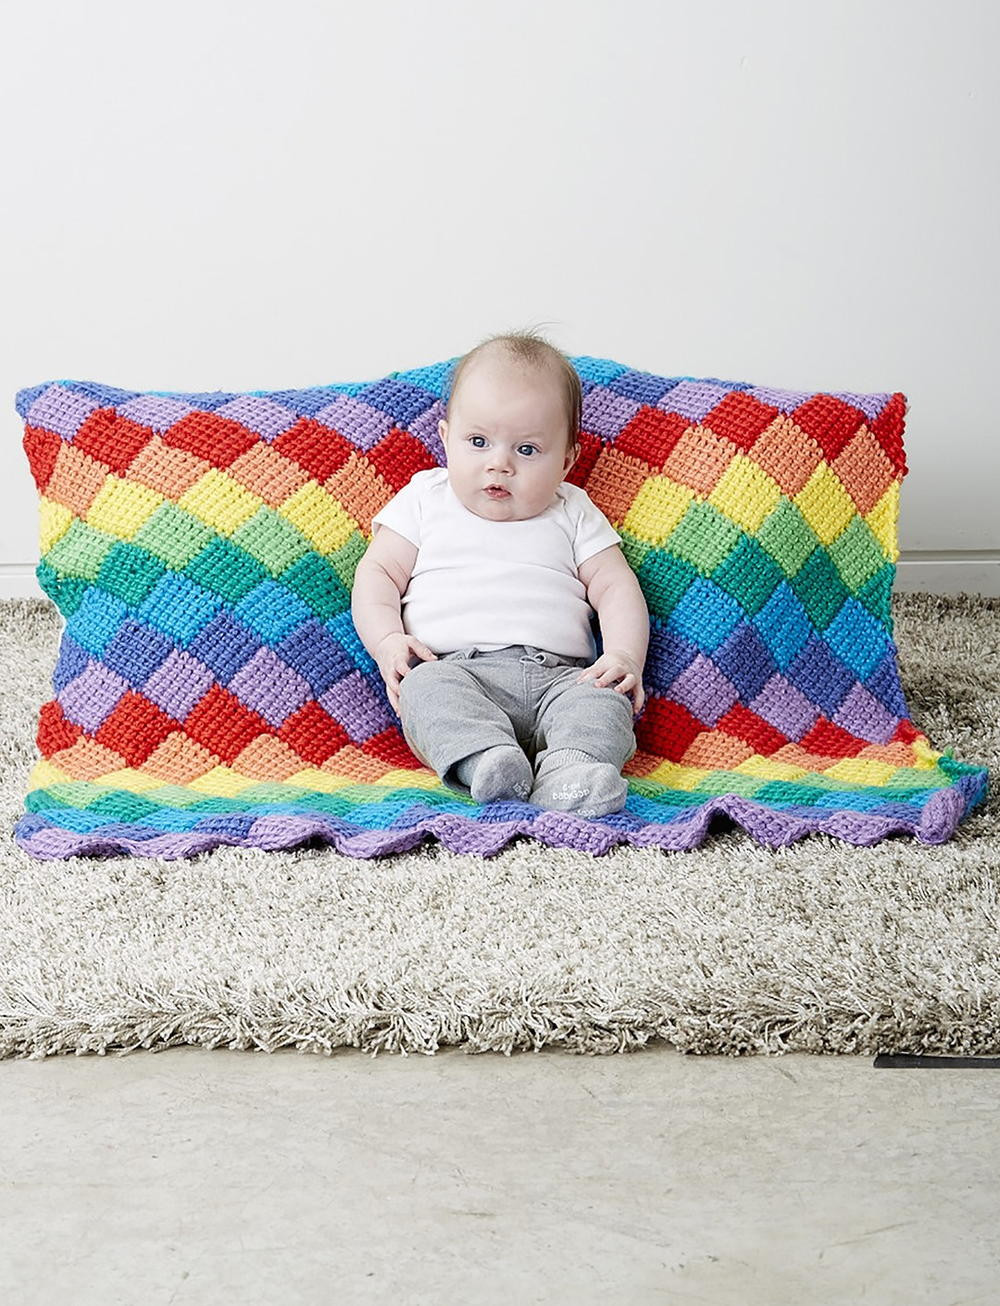 Crochet Baby Blanket Patterns Luxury Rainbow Tunisian Crochet Baby Blanket Pattern Of Fresh 44 Models Crochet Baby Blanket Patterns